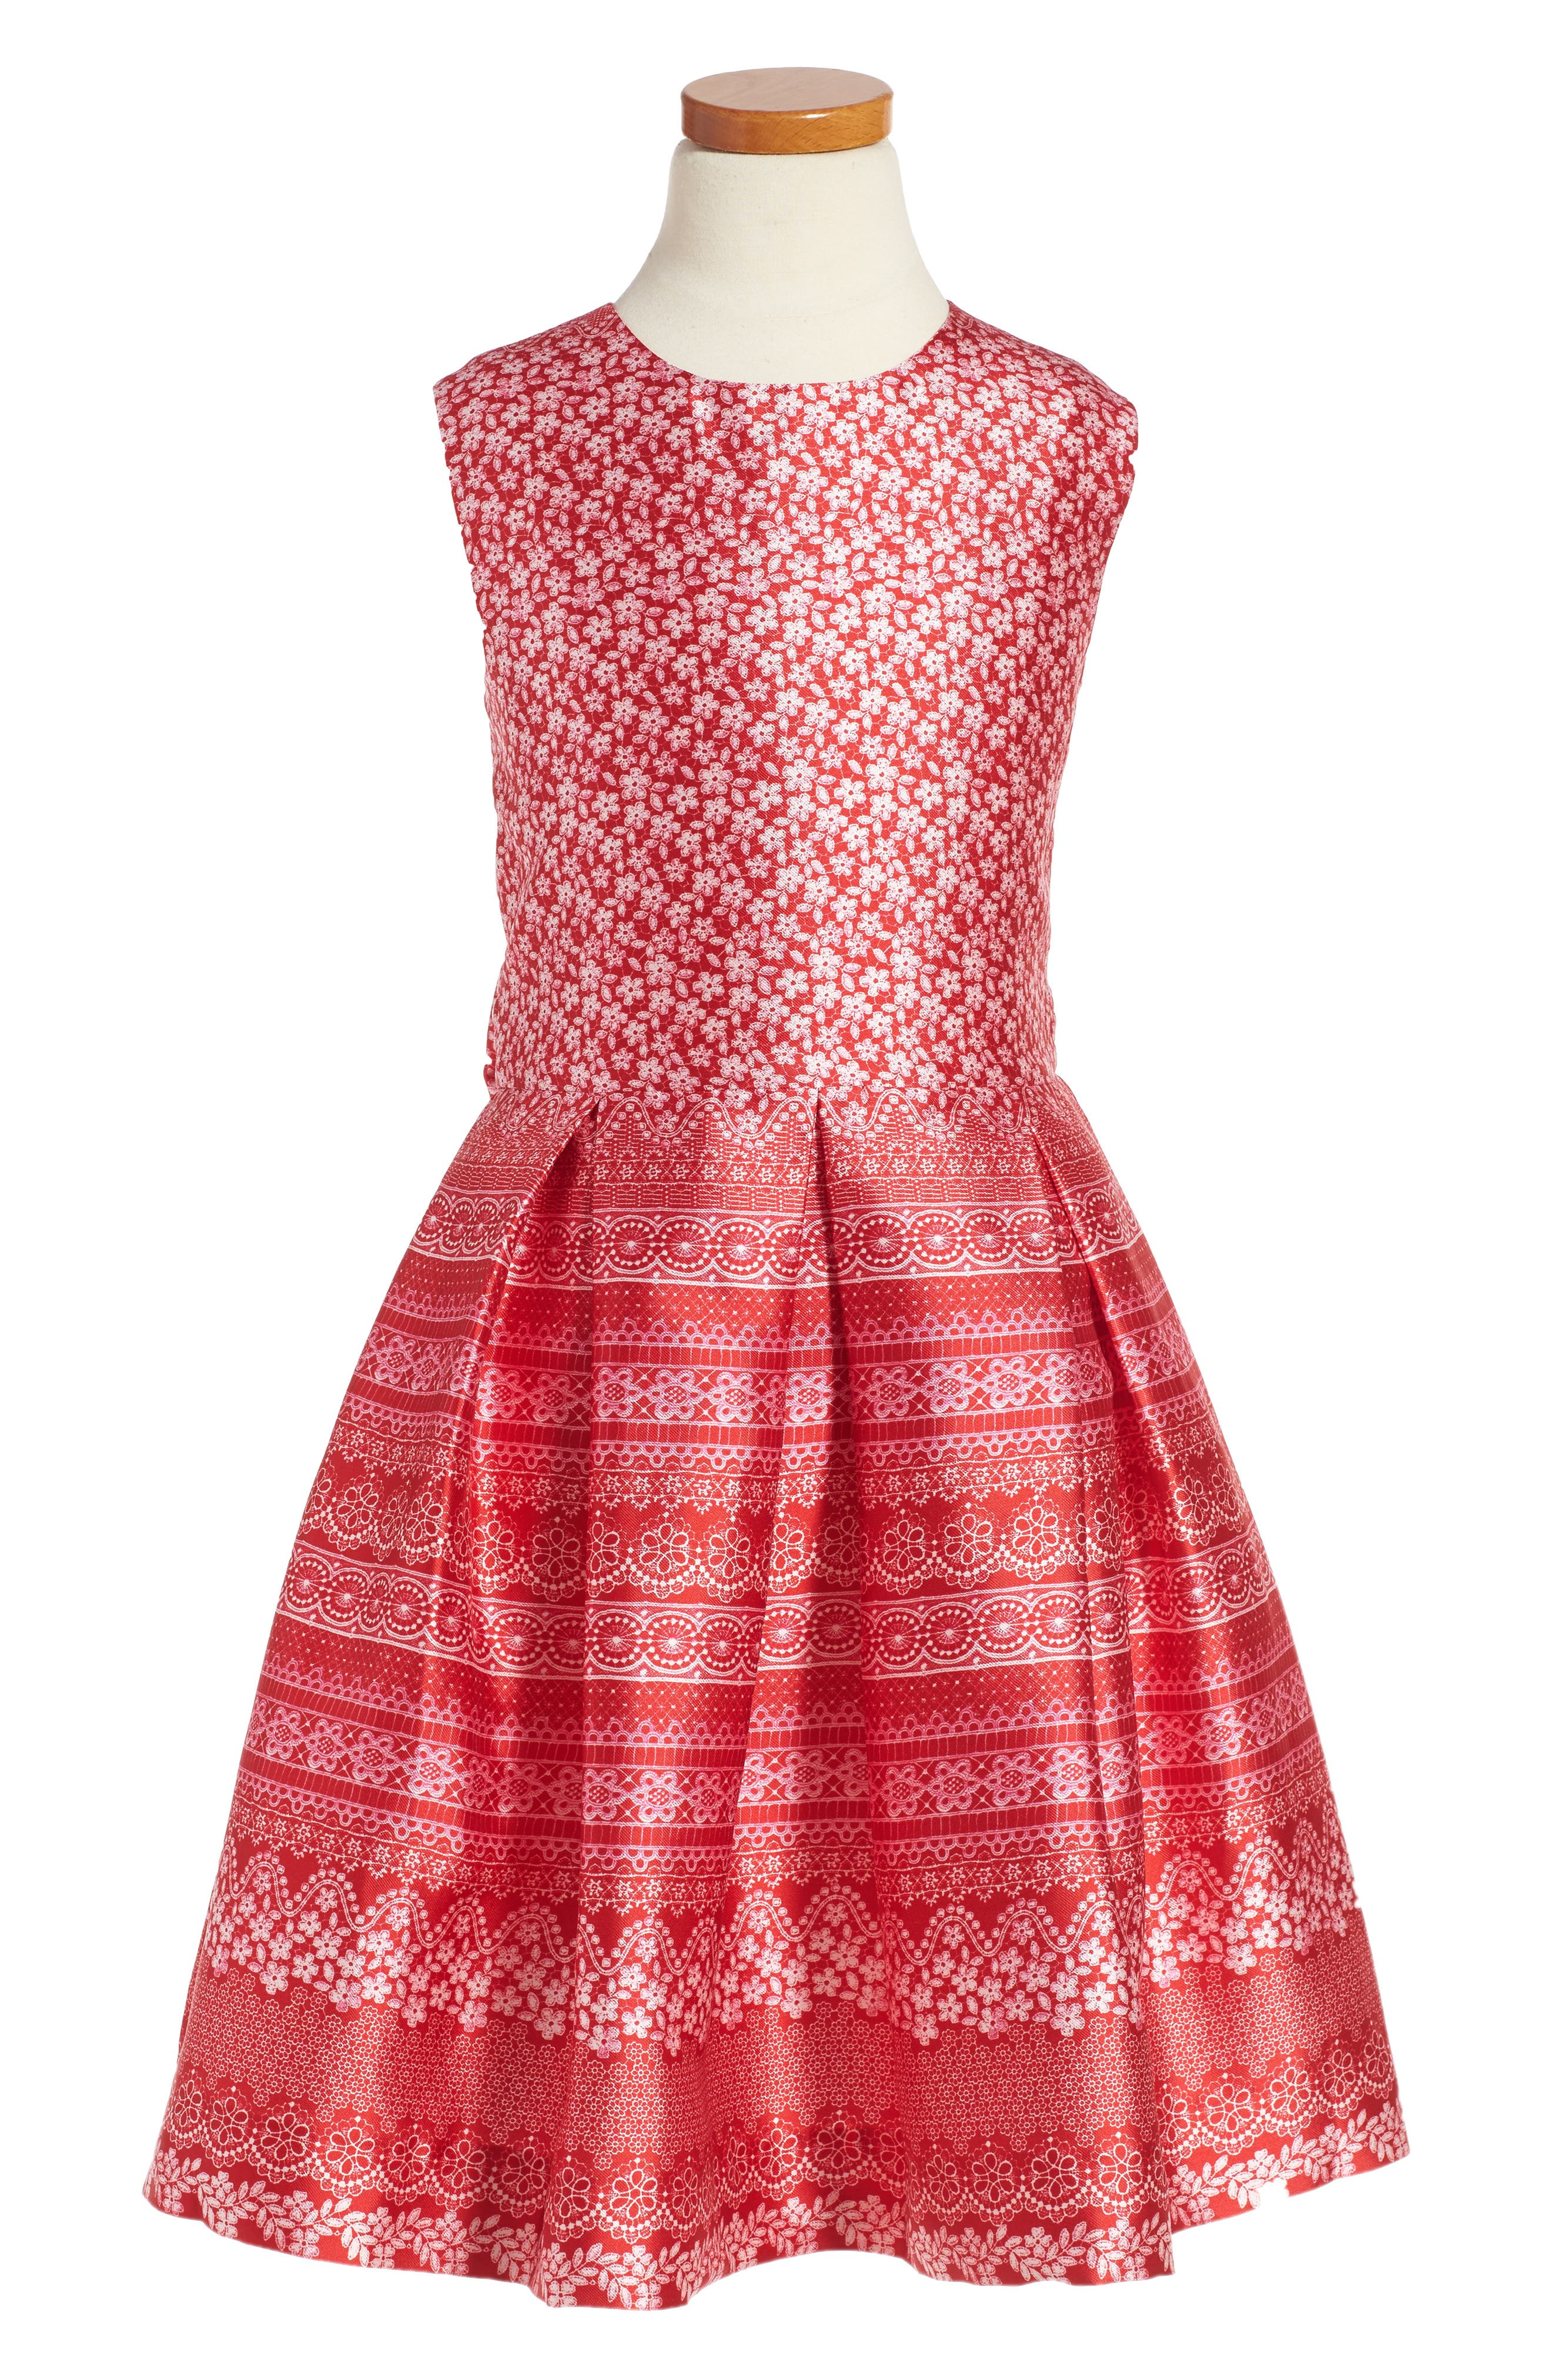 Alternate Image 1 Selected - Oscar de la Renta Lace Bands Mikado Party Dress (Big Girls)